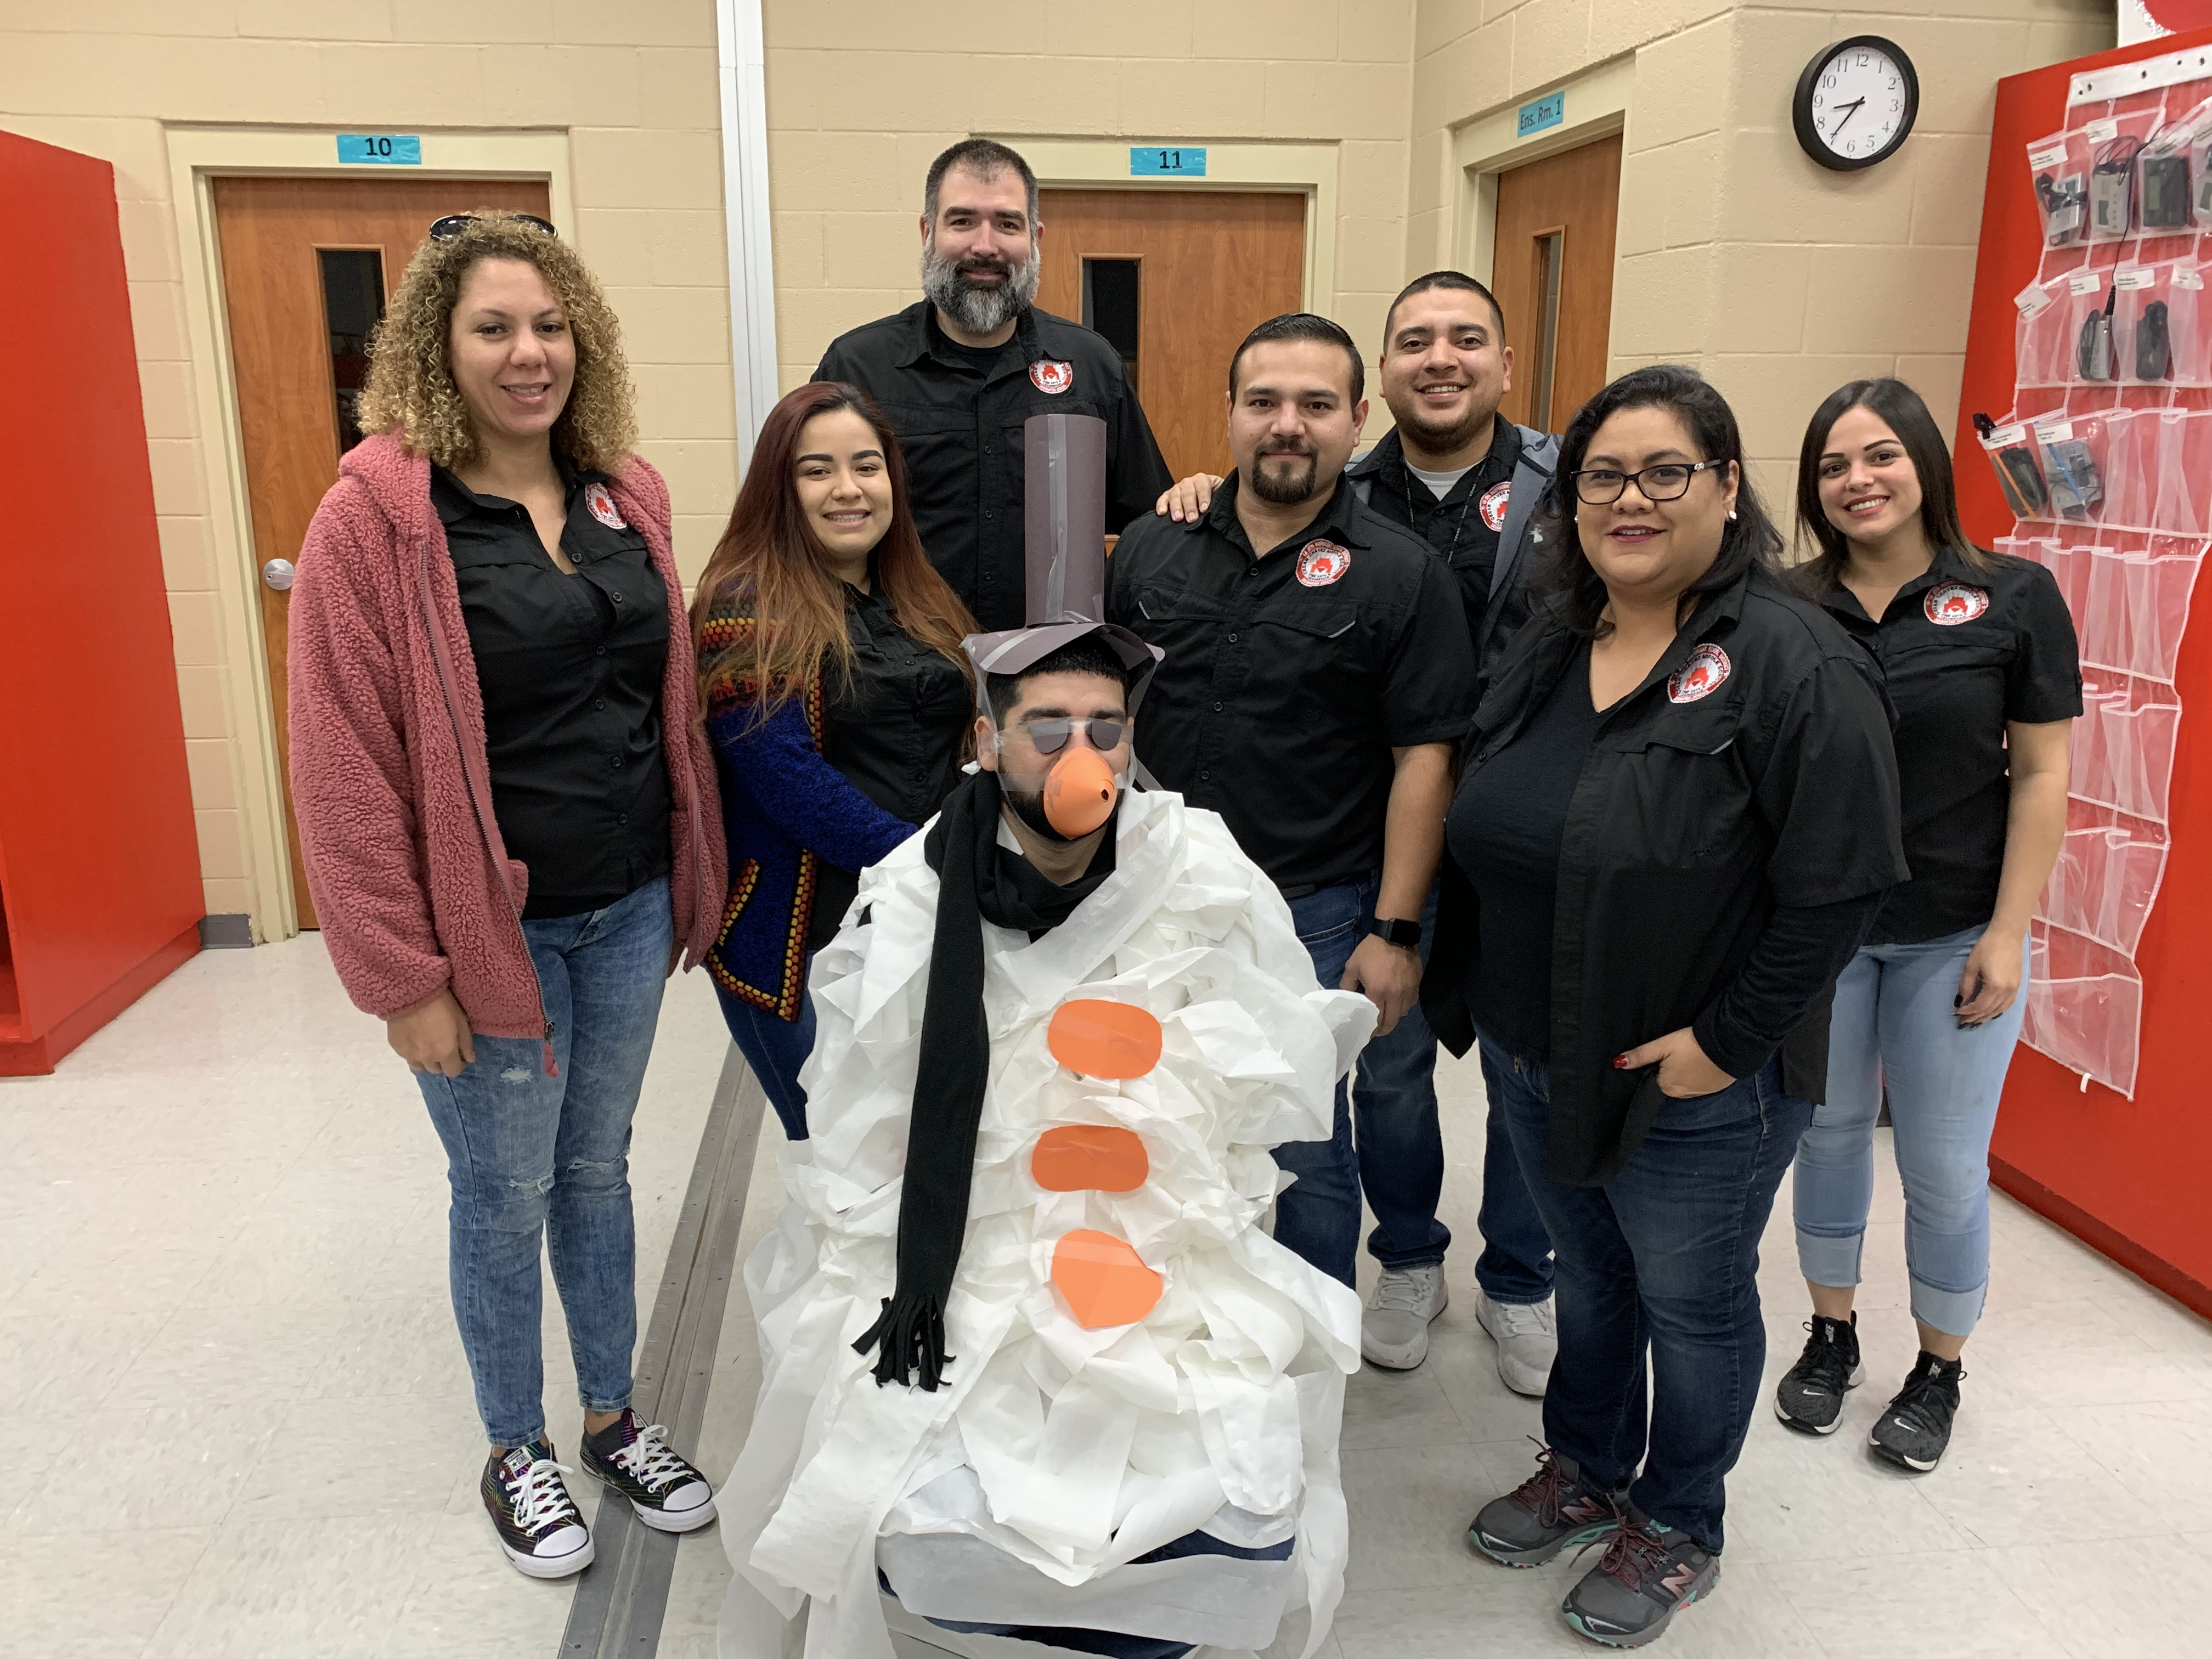 Science Teachers featuring snowman Mr. Garza